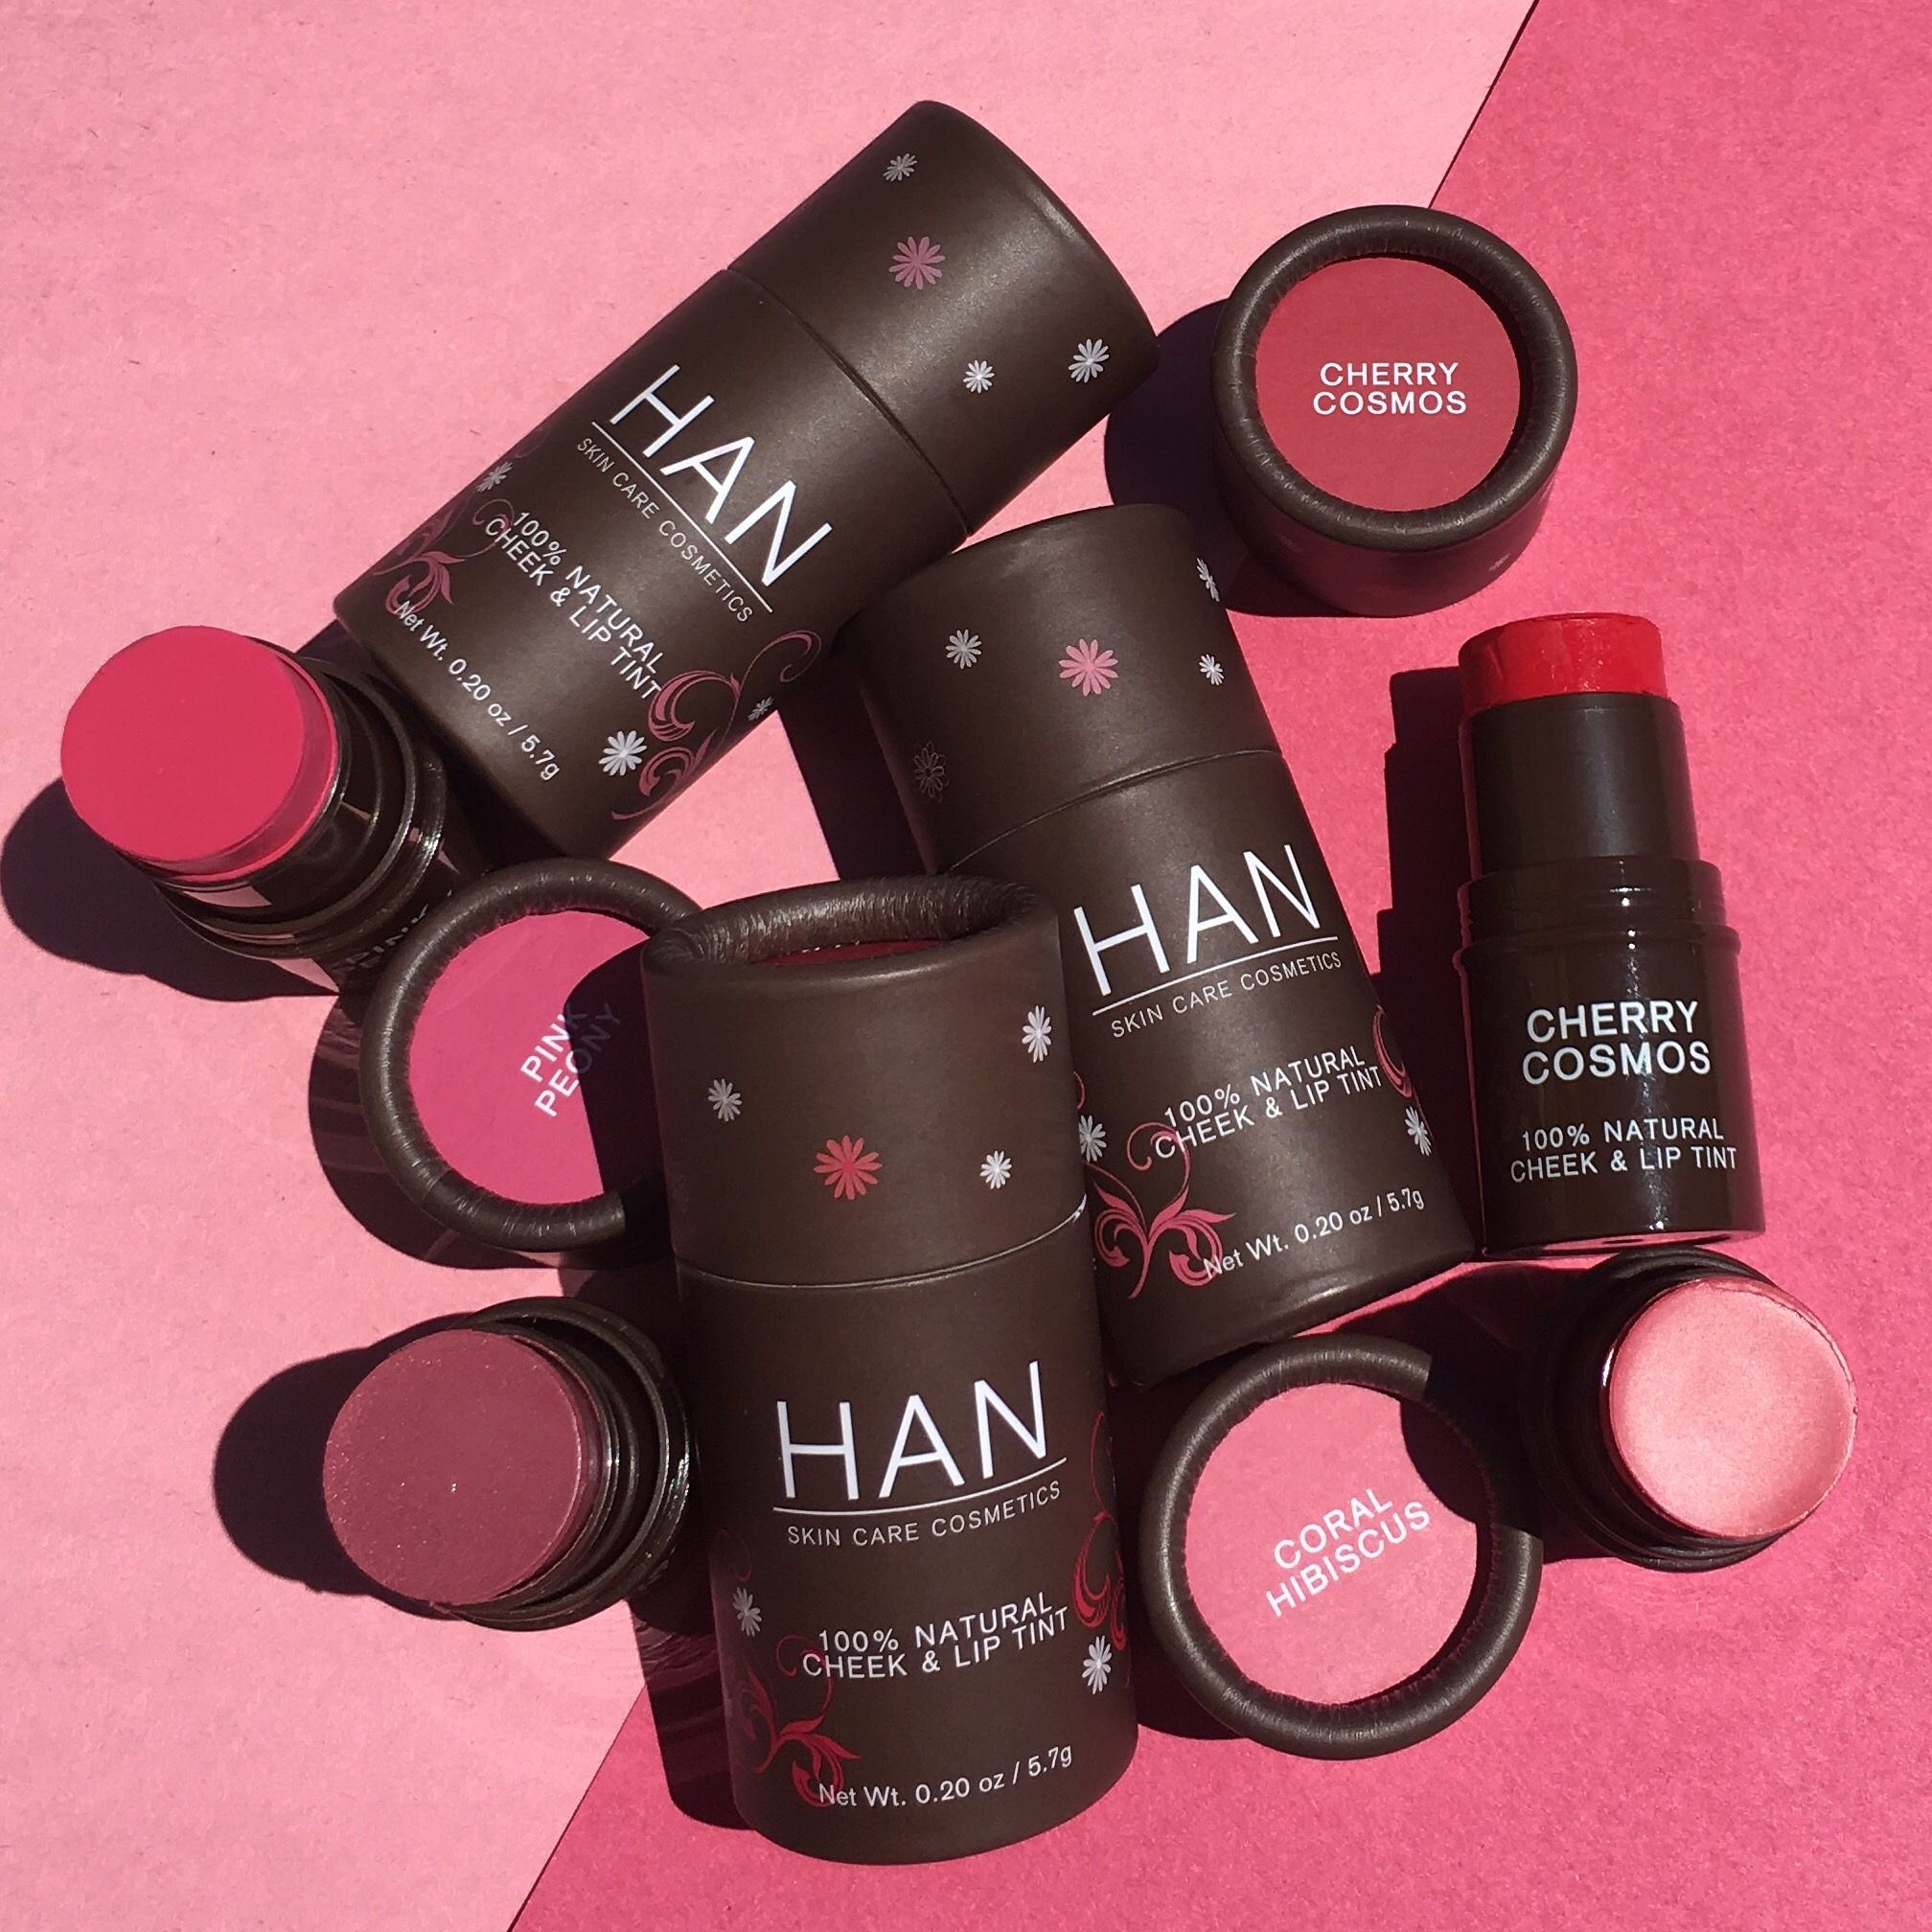 Add A Pop Of Pink To Your Day With Han Skin Care Cosmetics Cheek And Lip Tints Cruelty Free Cosmetics Cruelty Free Makeup Natural Lip Tints